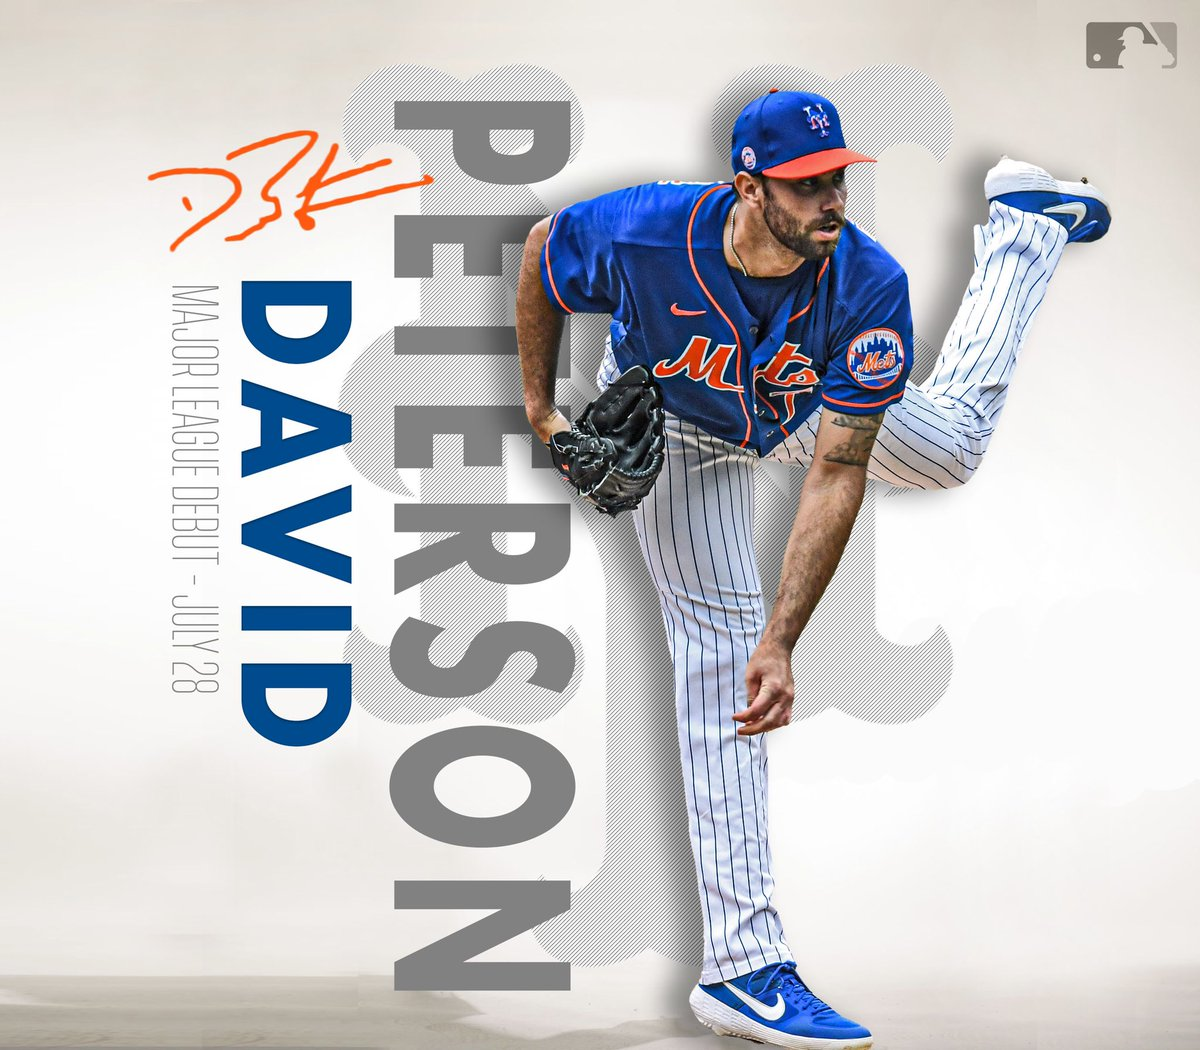 Welcome to the show!  @_David_Peterson is expected to make his @MLB debut tonight in Boston. #LGM https://t.co/IpN72grXR7